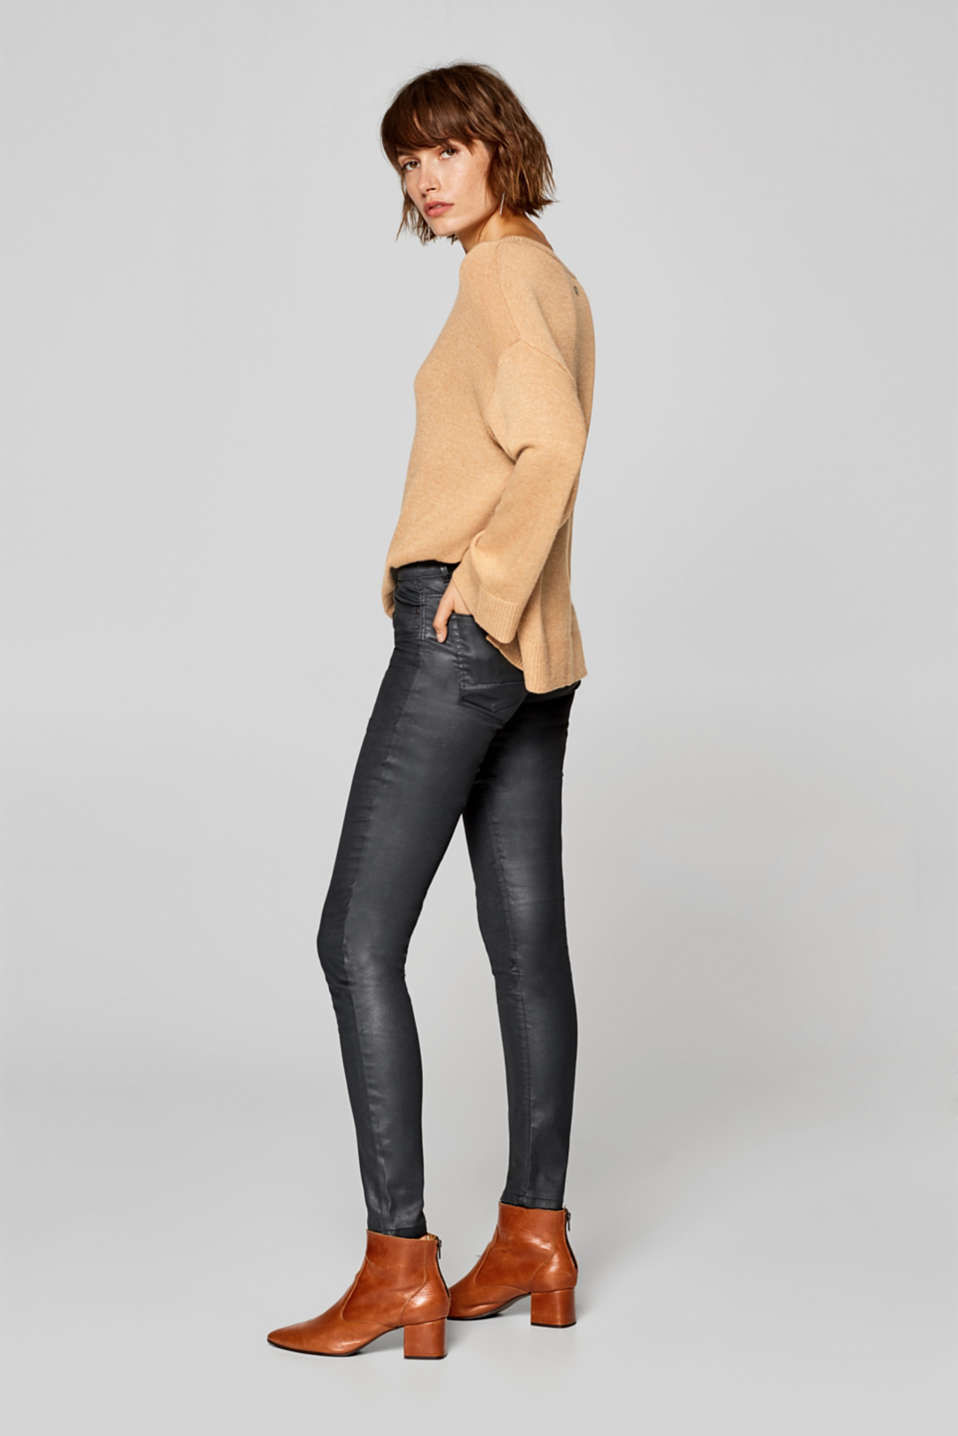 Faux leather stretchy trousers